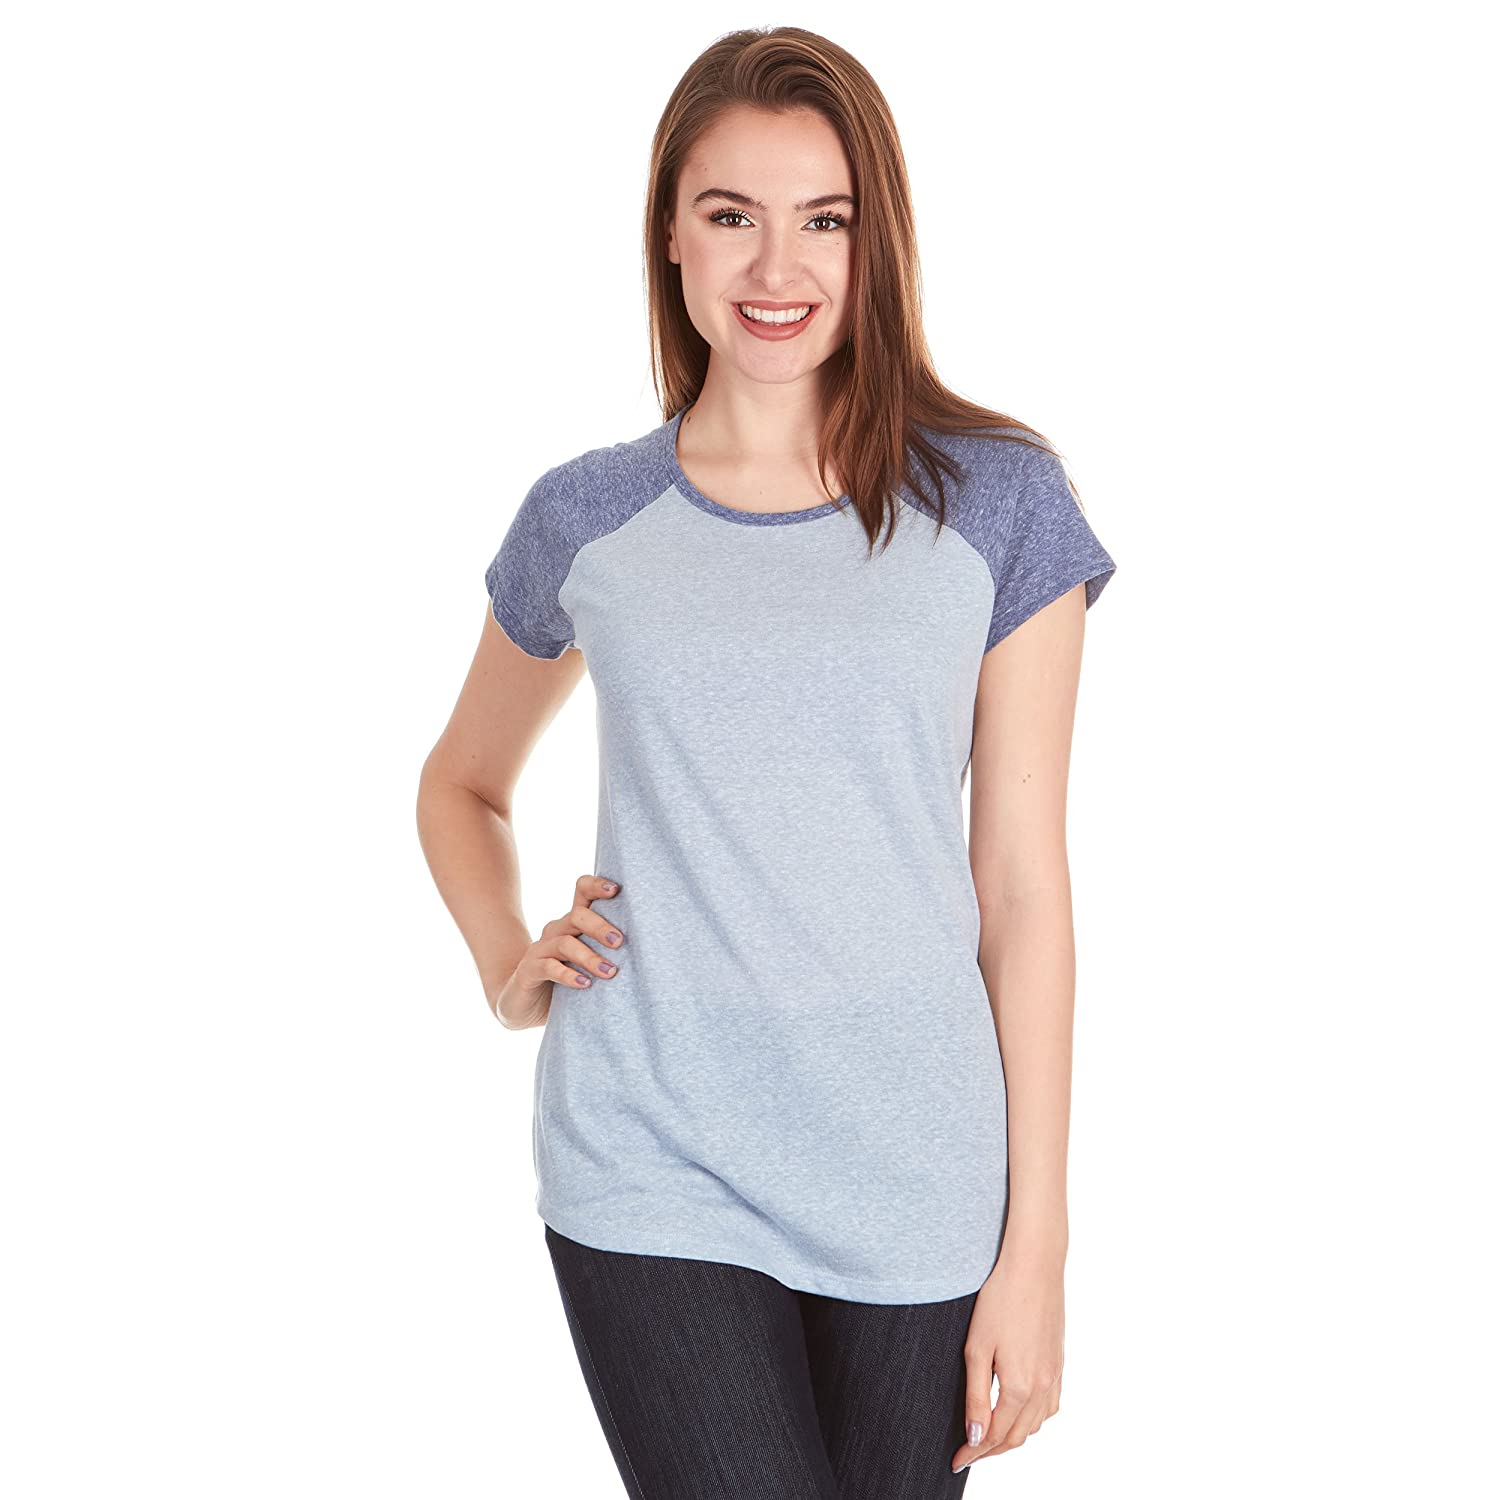 e903d079f45fe Tee To Match Your Style: It's time to take your overall statement up a  notch with this super stylish Frost Jersey Triblend Women Cap Sleeve Raglan  Baseball ...